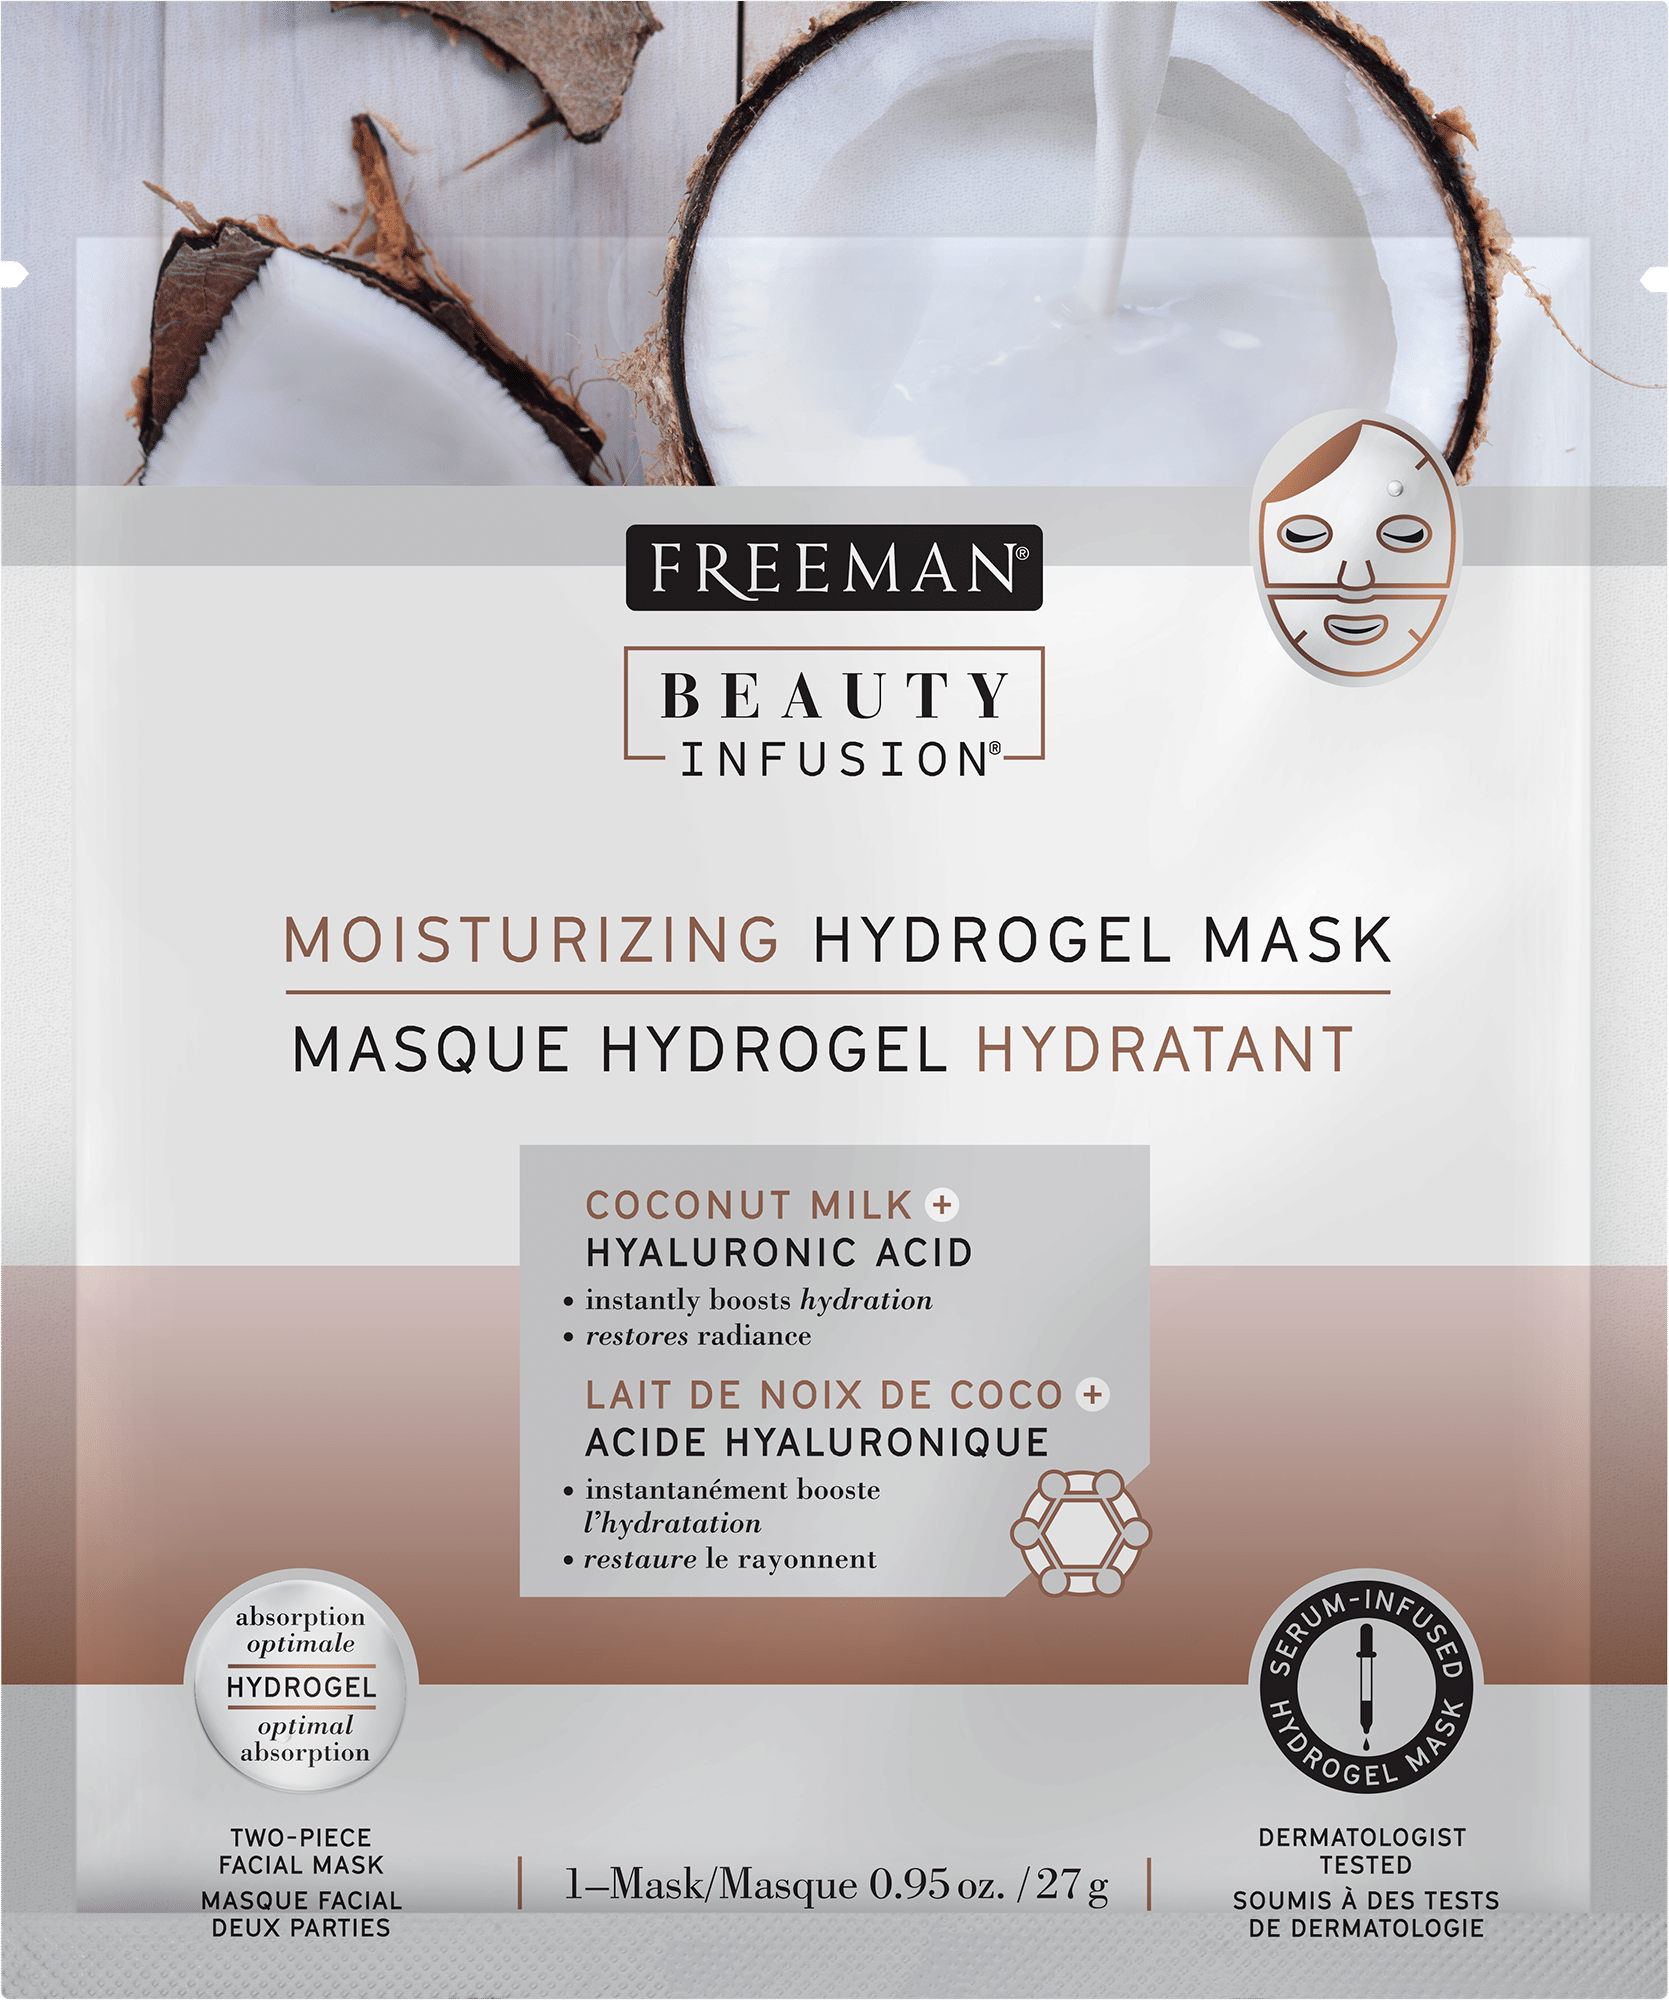 MOISTURIZING HYDROGEL MASK COCONUT MILK + HYALURONIC ACID